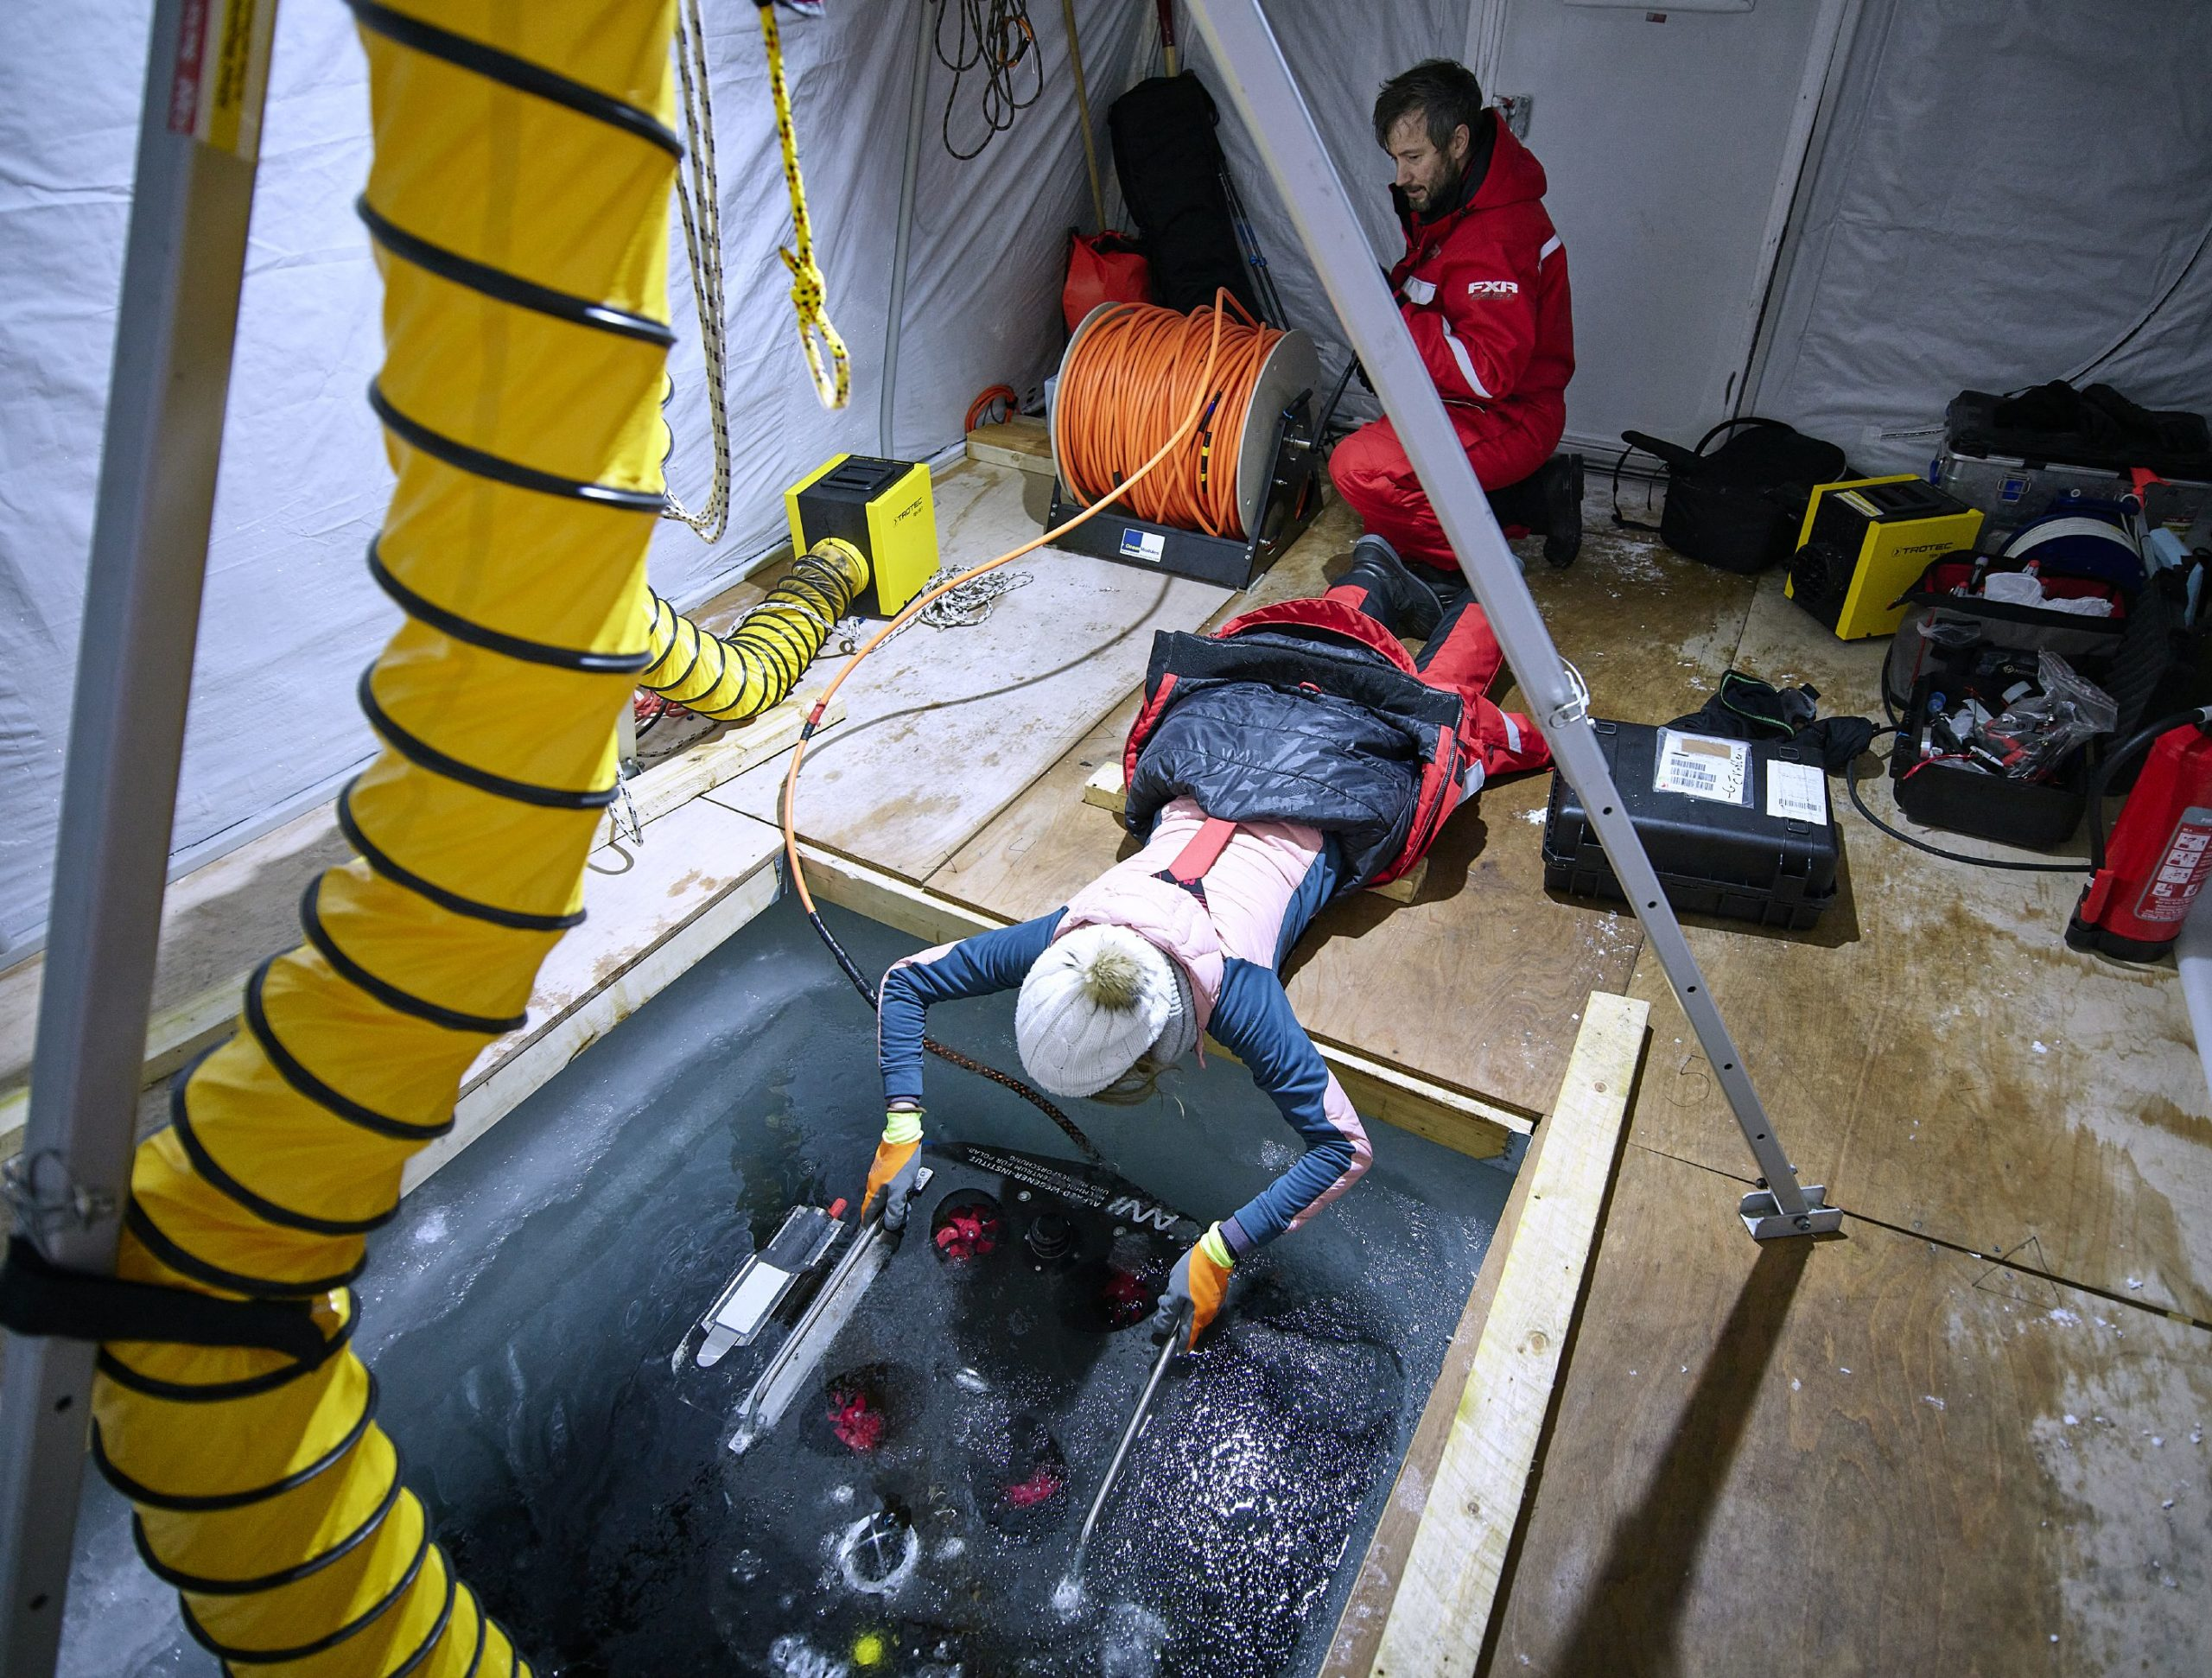 Stefanie Arndt (front) and Falk Pätzold submerging the ROV